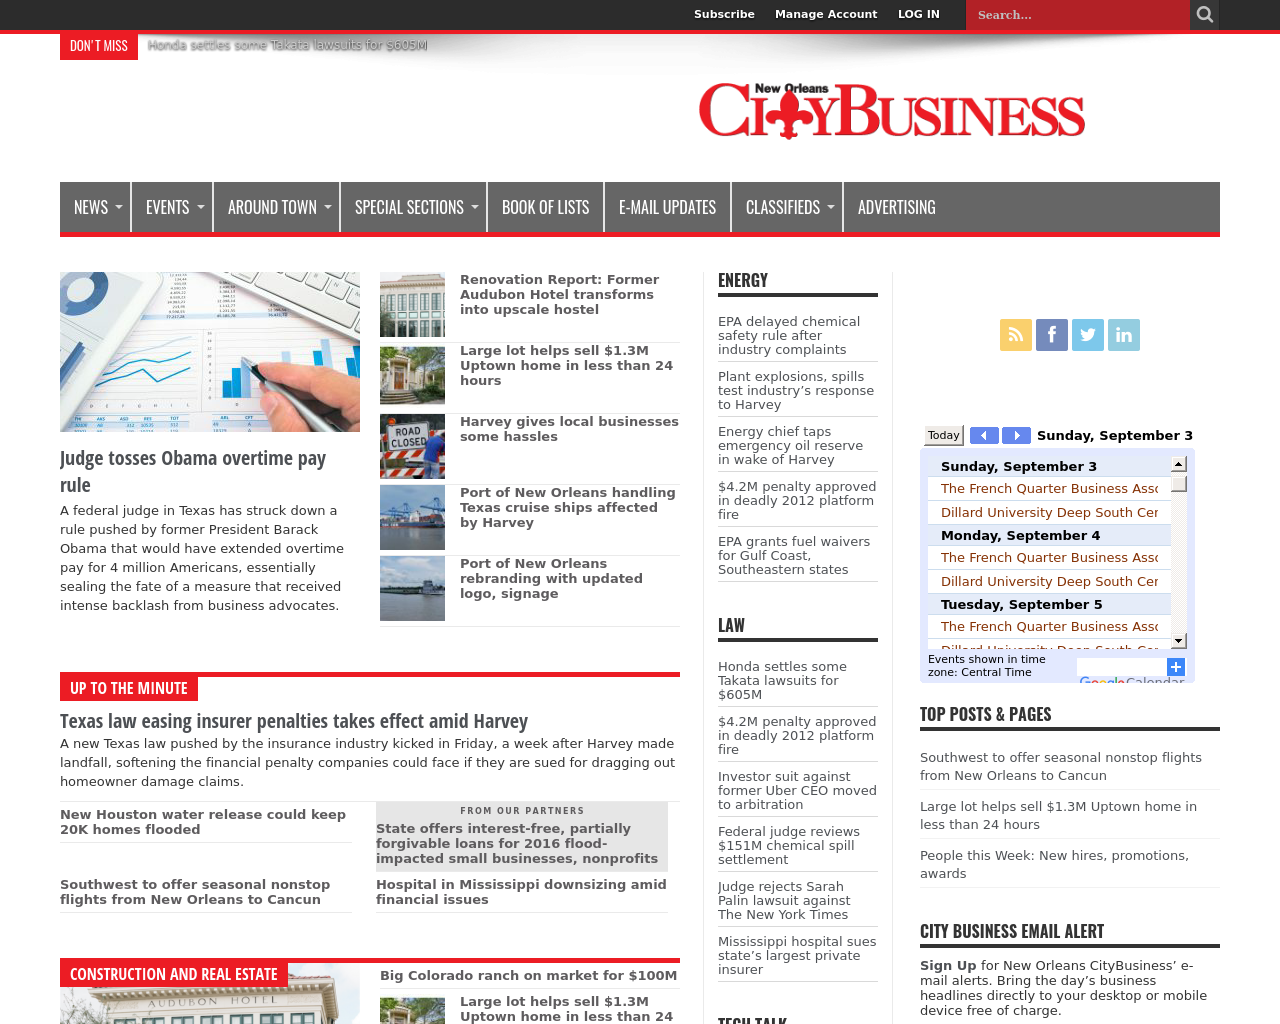 New-Orleans-CityBusiness-Advertising-Reviews-Pricing